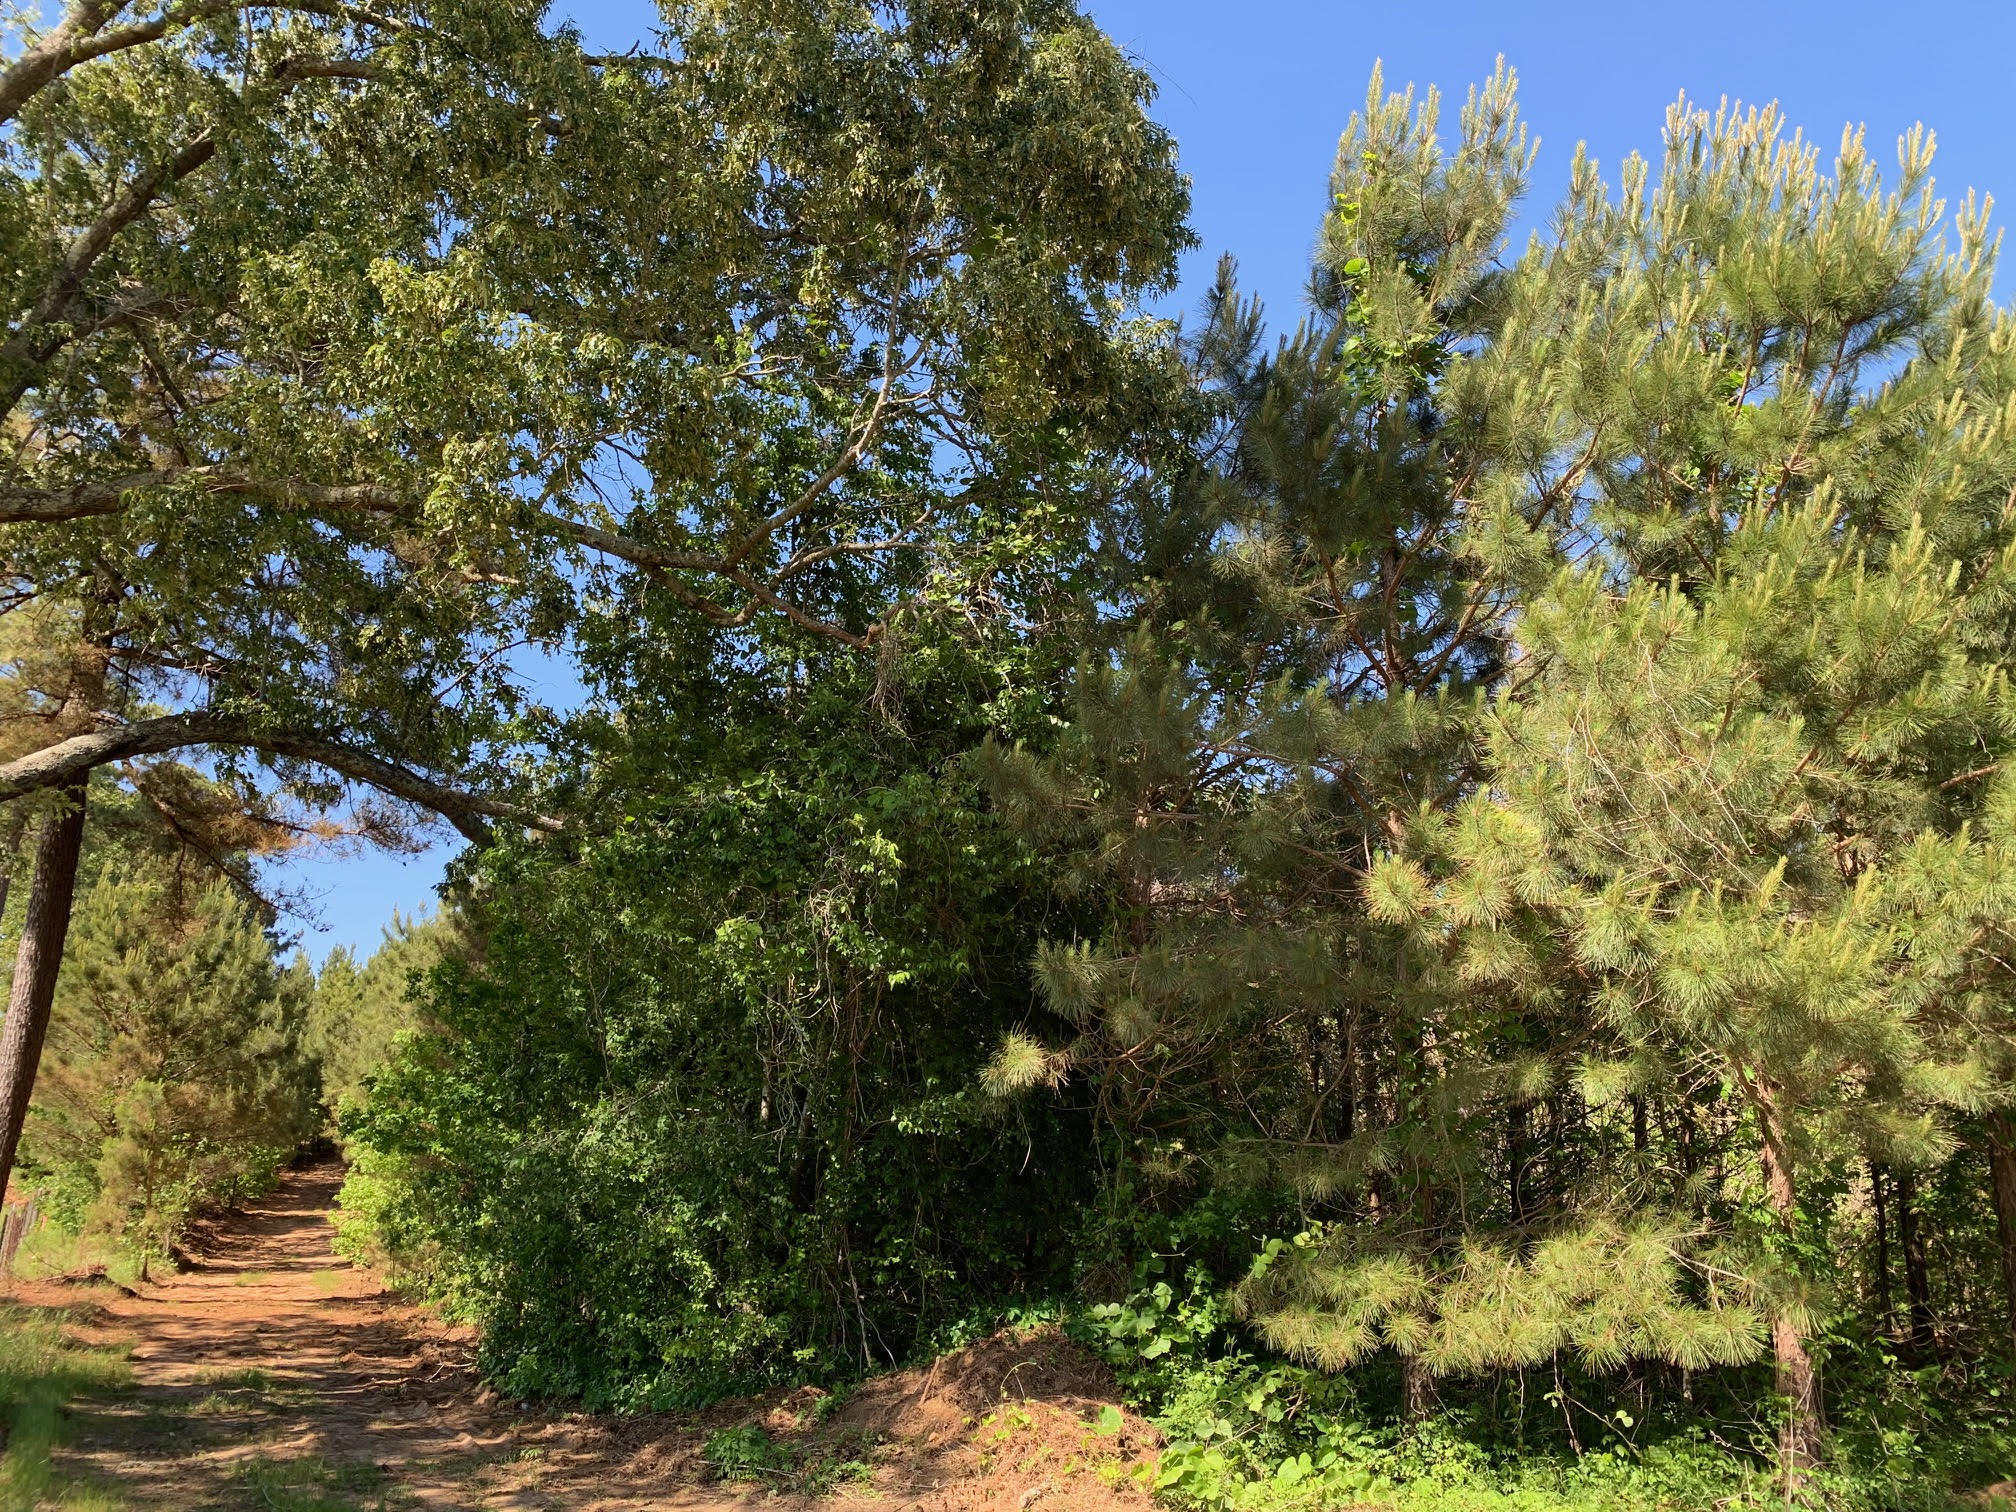 Tract 1 Steward RD (10.1 Acres)